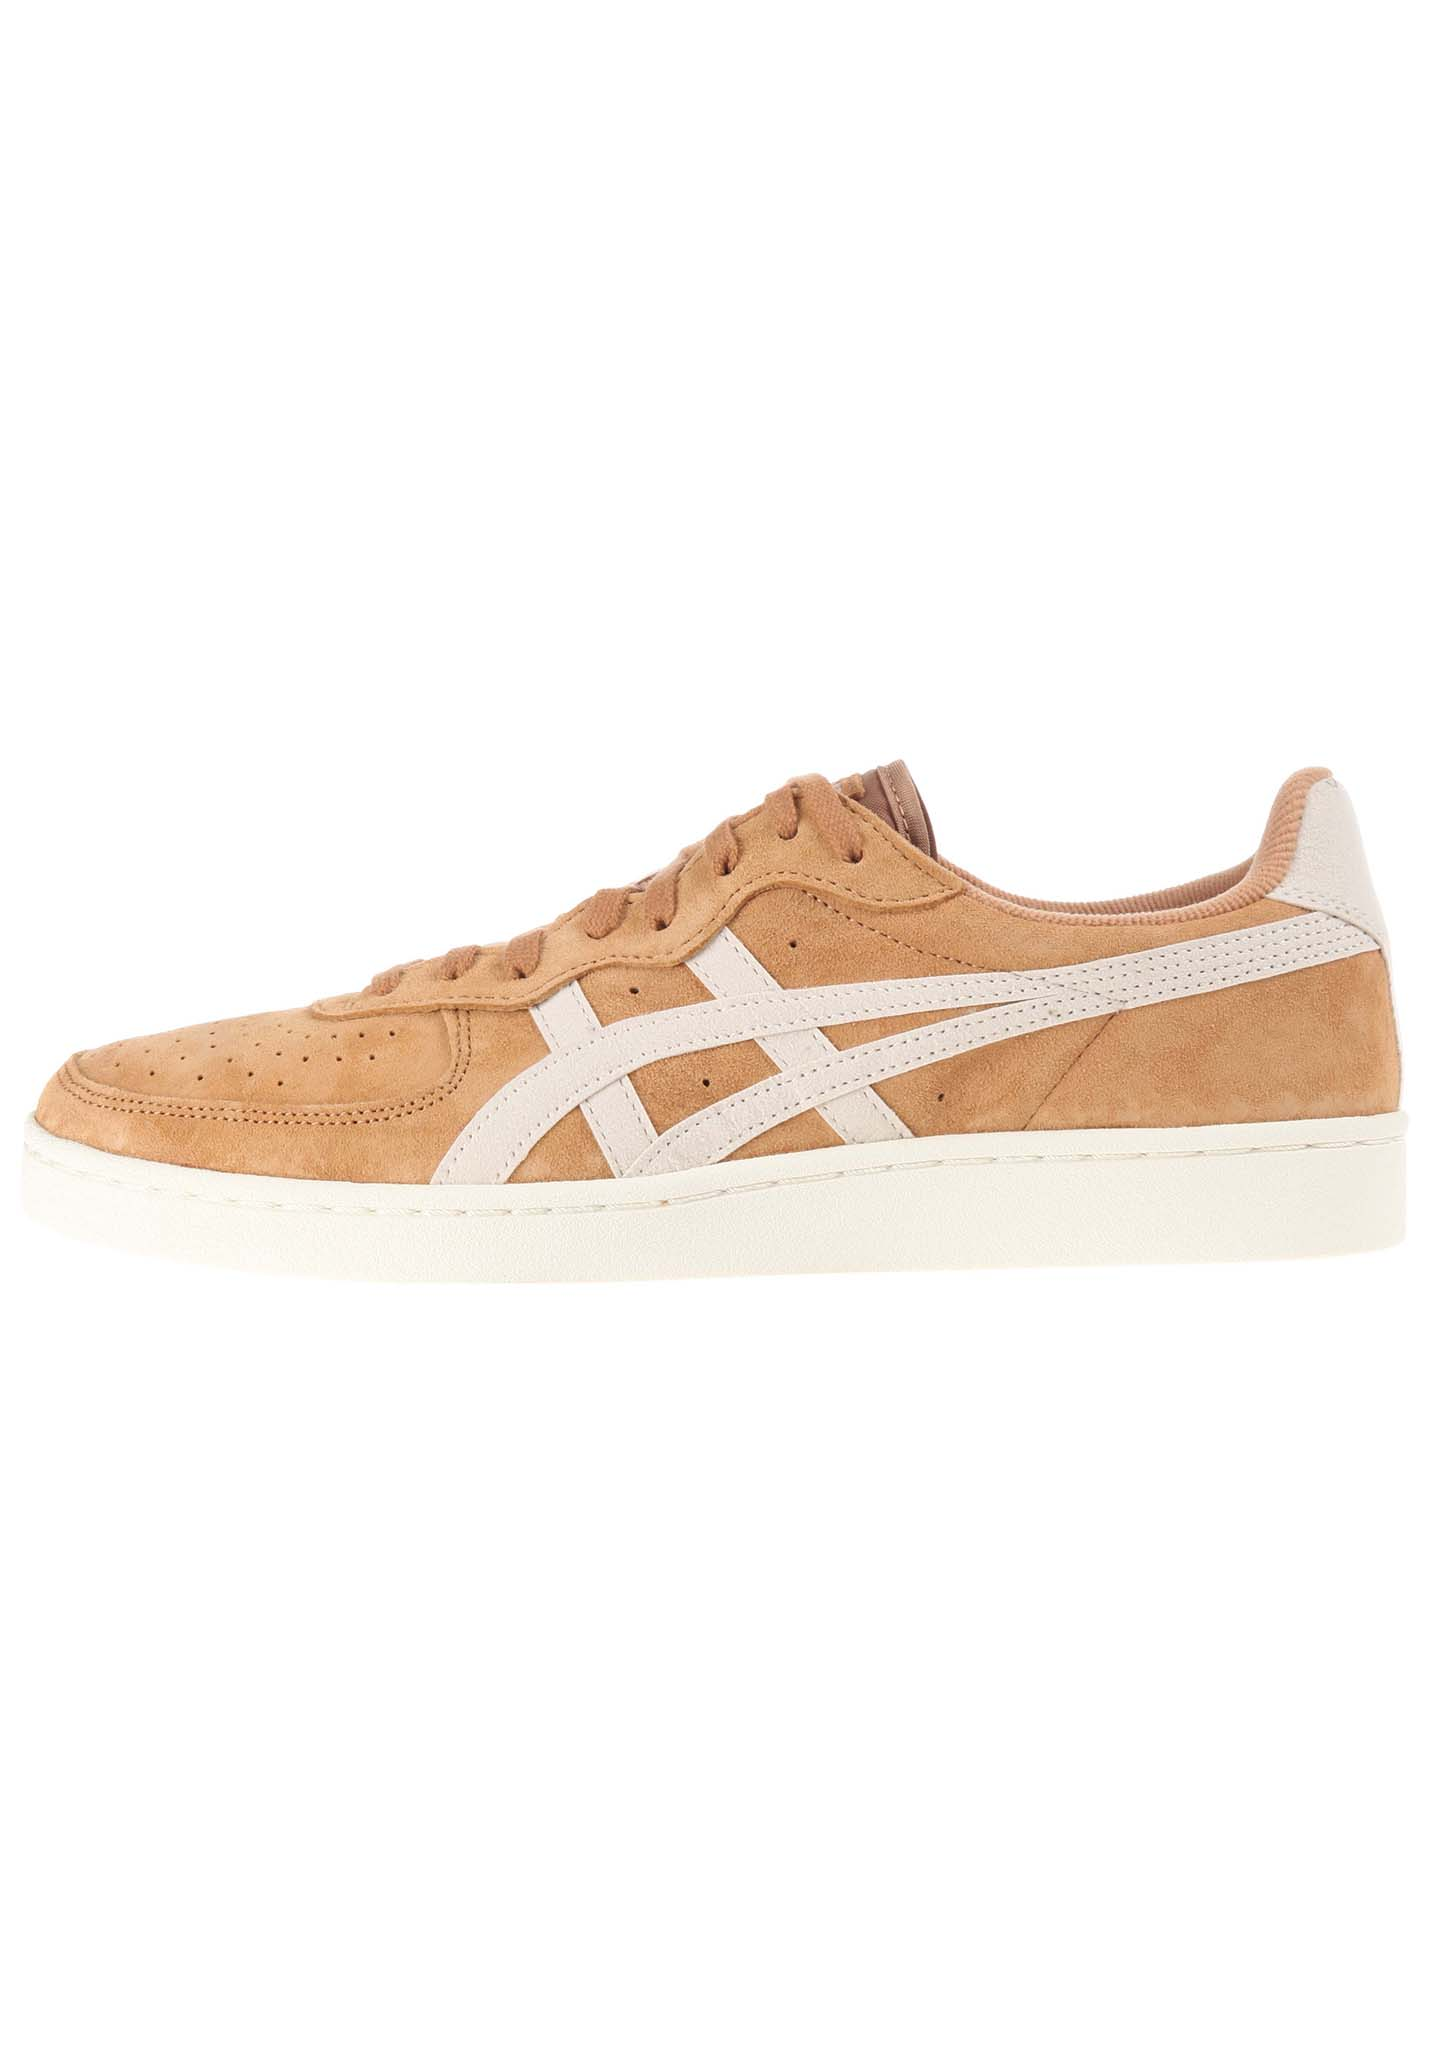 promo code 02a9a c833b Onitsuka Tiger GSM - Sneakers - Brown